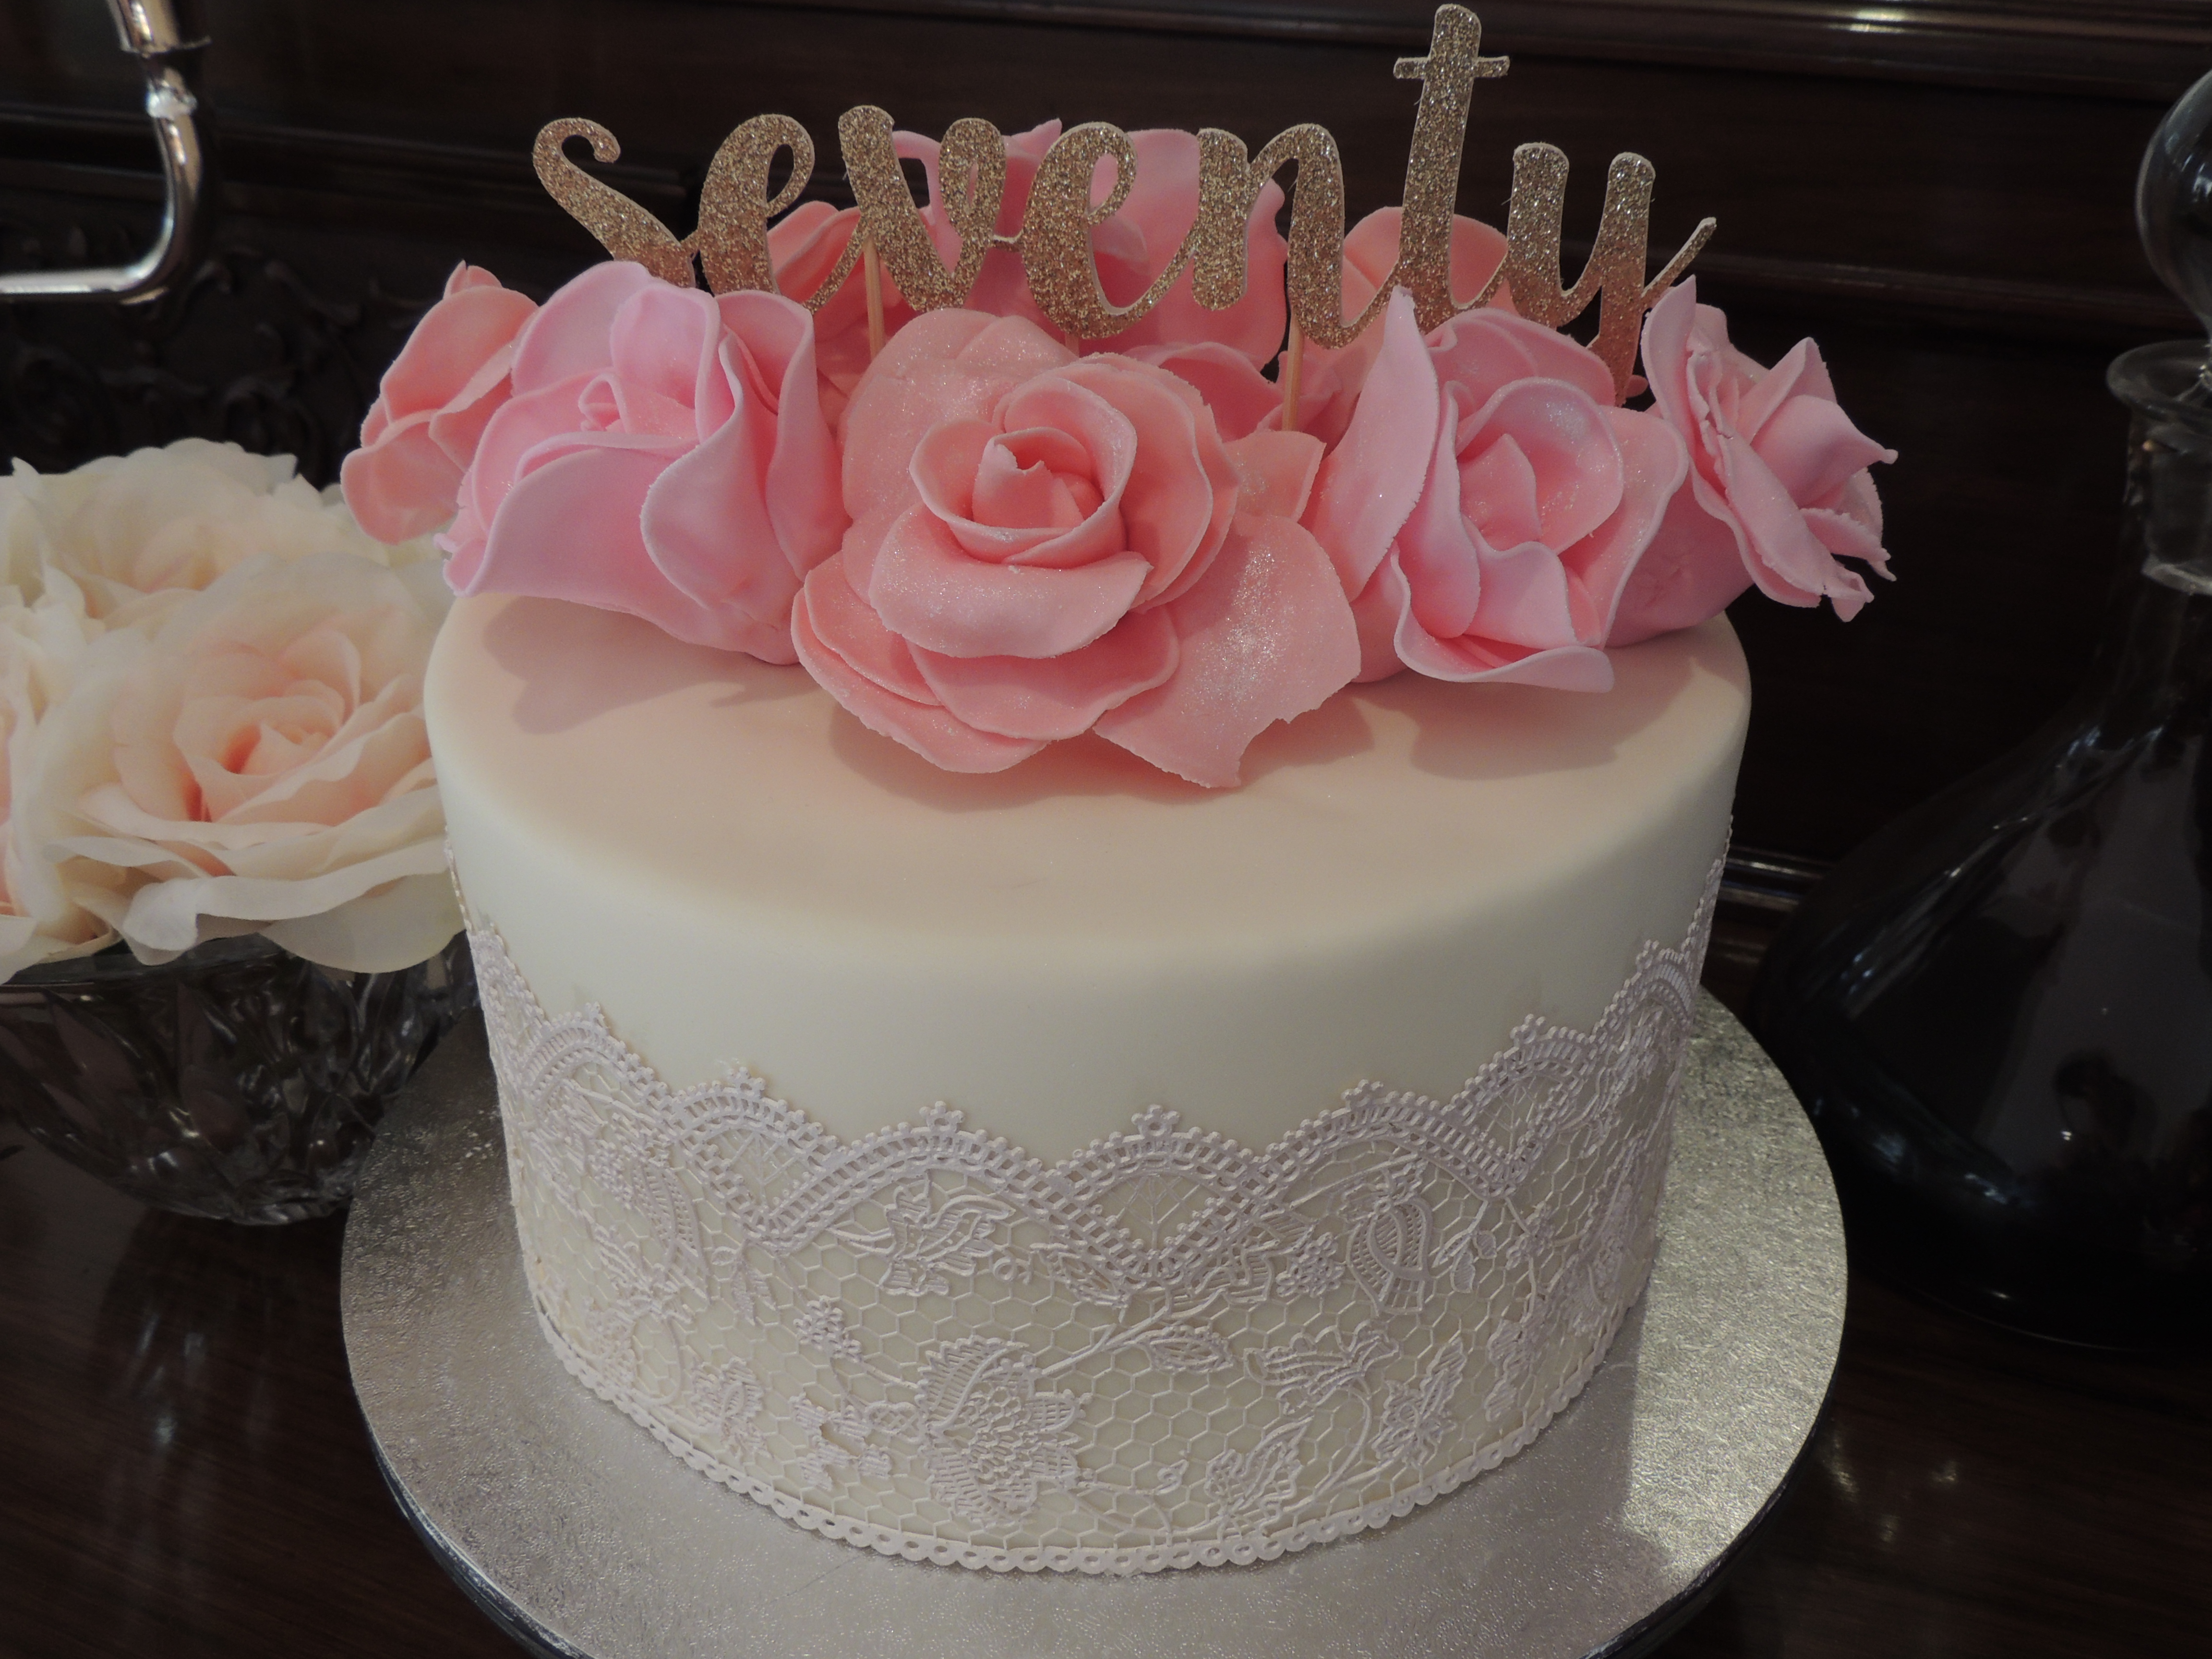 Mums Seventieth Birthday Cake fondant roses and cake lace The